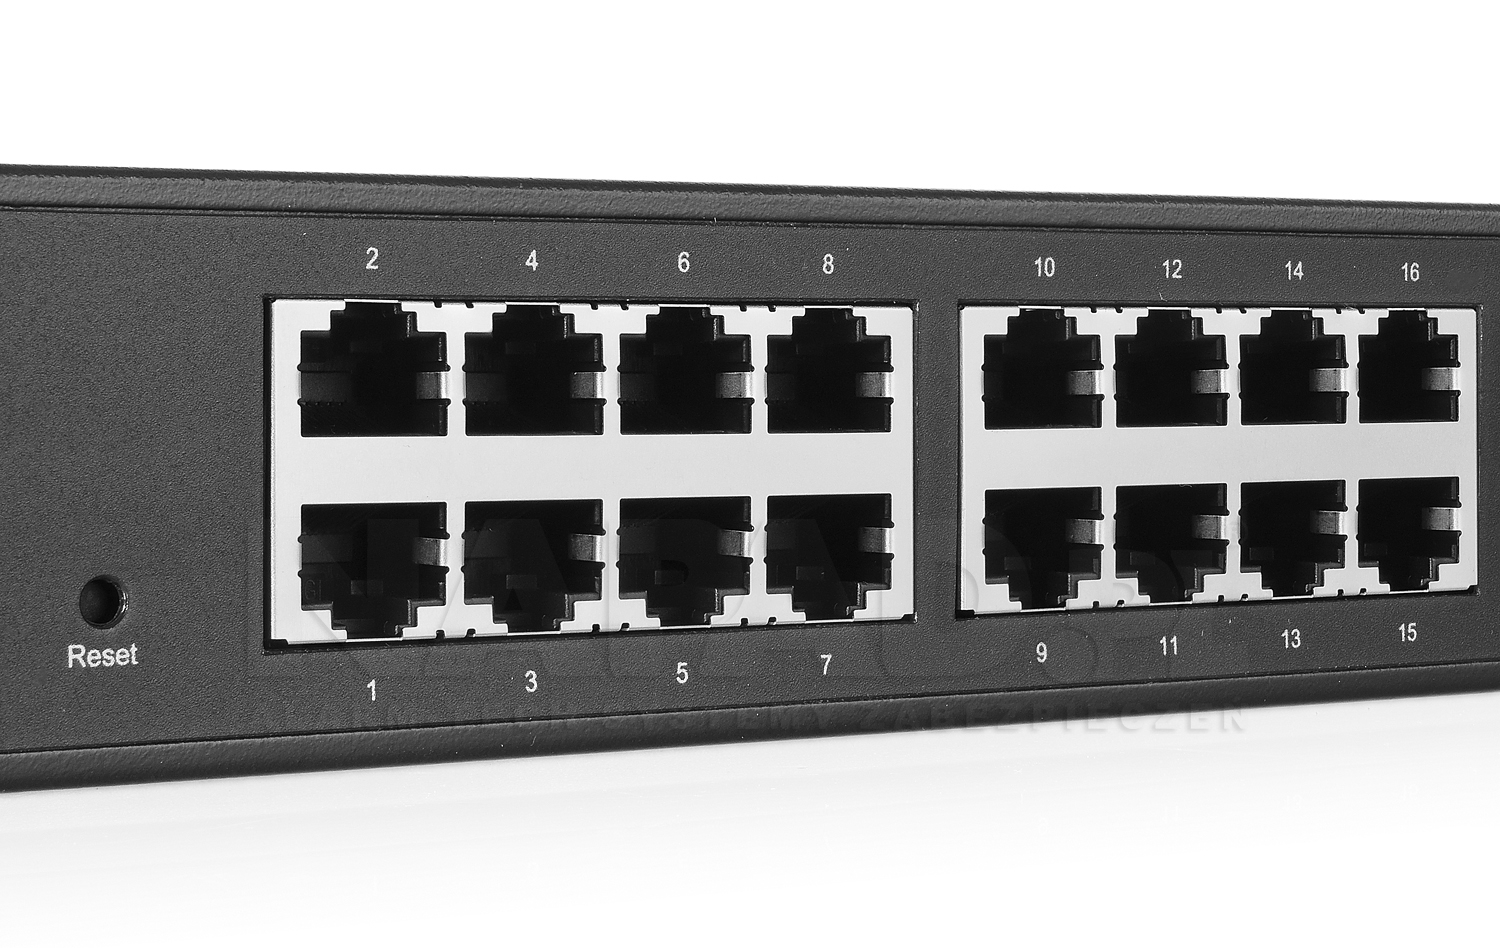 TLSG2424 - Porty ethernet w switchu.